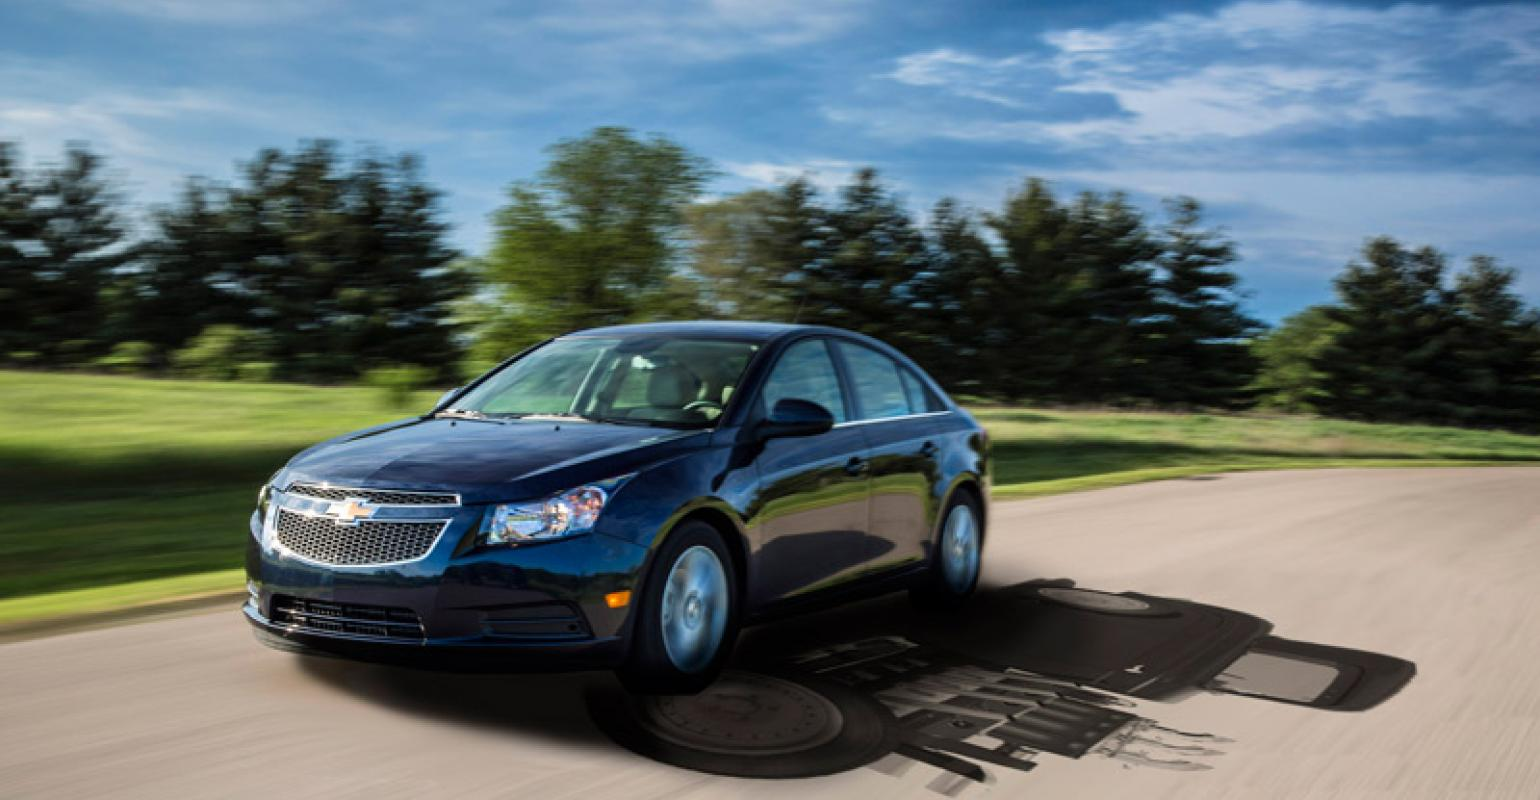 2015 chevy cruze service manual